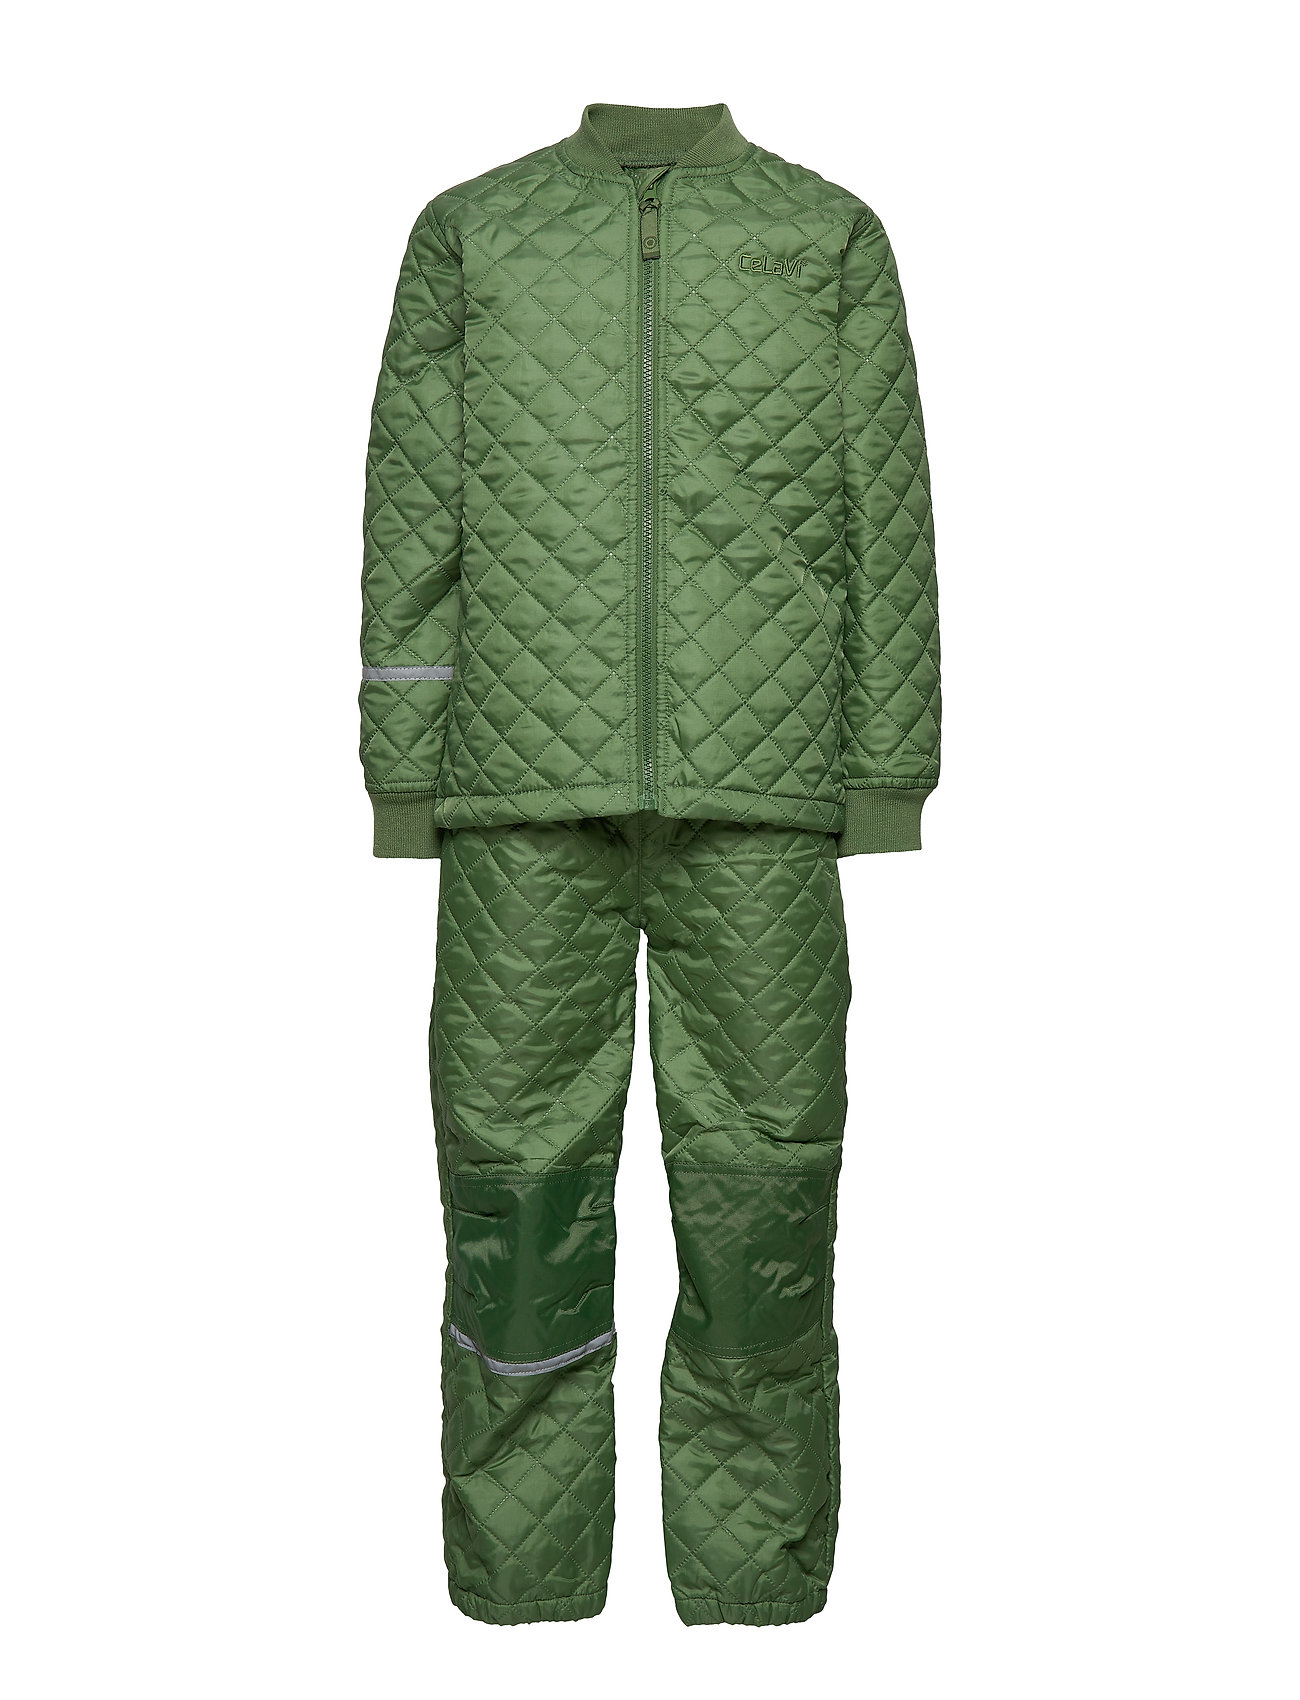 Image of Thermal Set -Solid Outerwear Thermo Outerwear Grøn CeLaVi (3350045473)